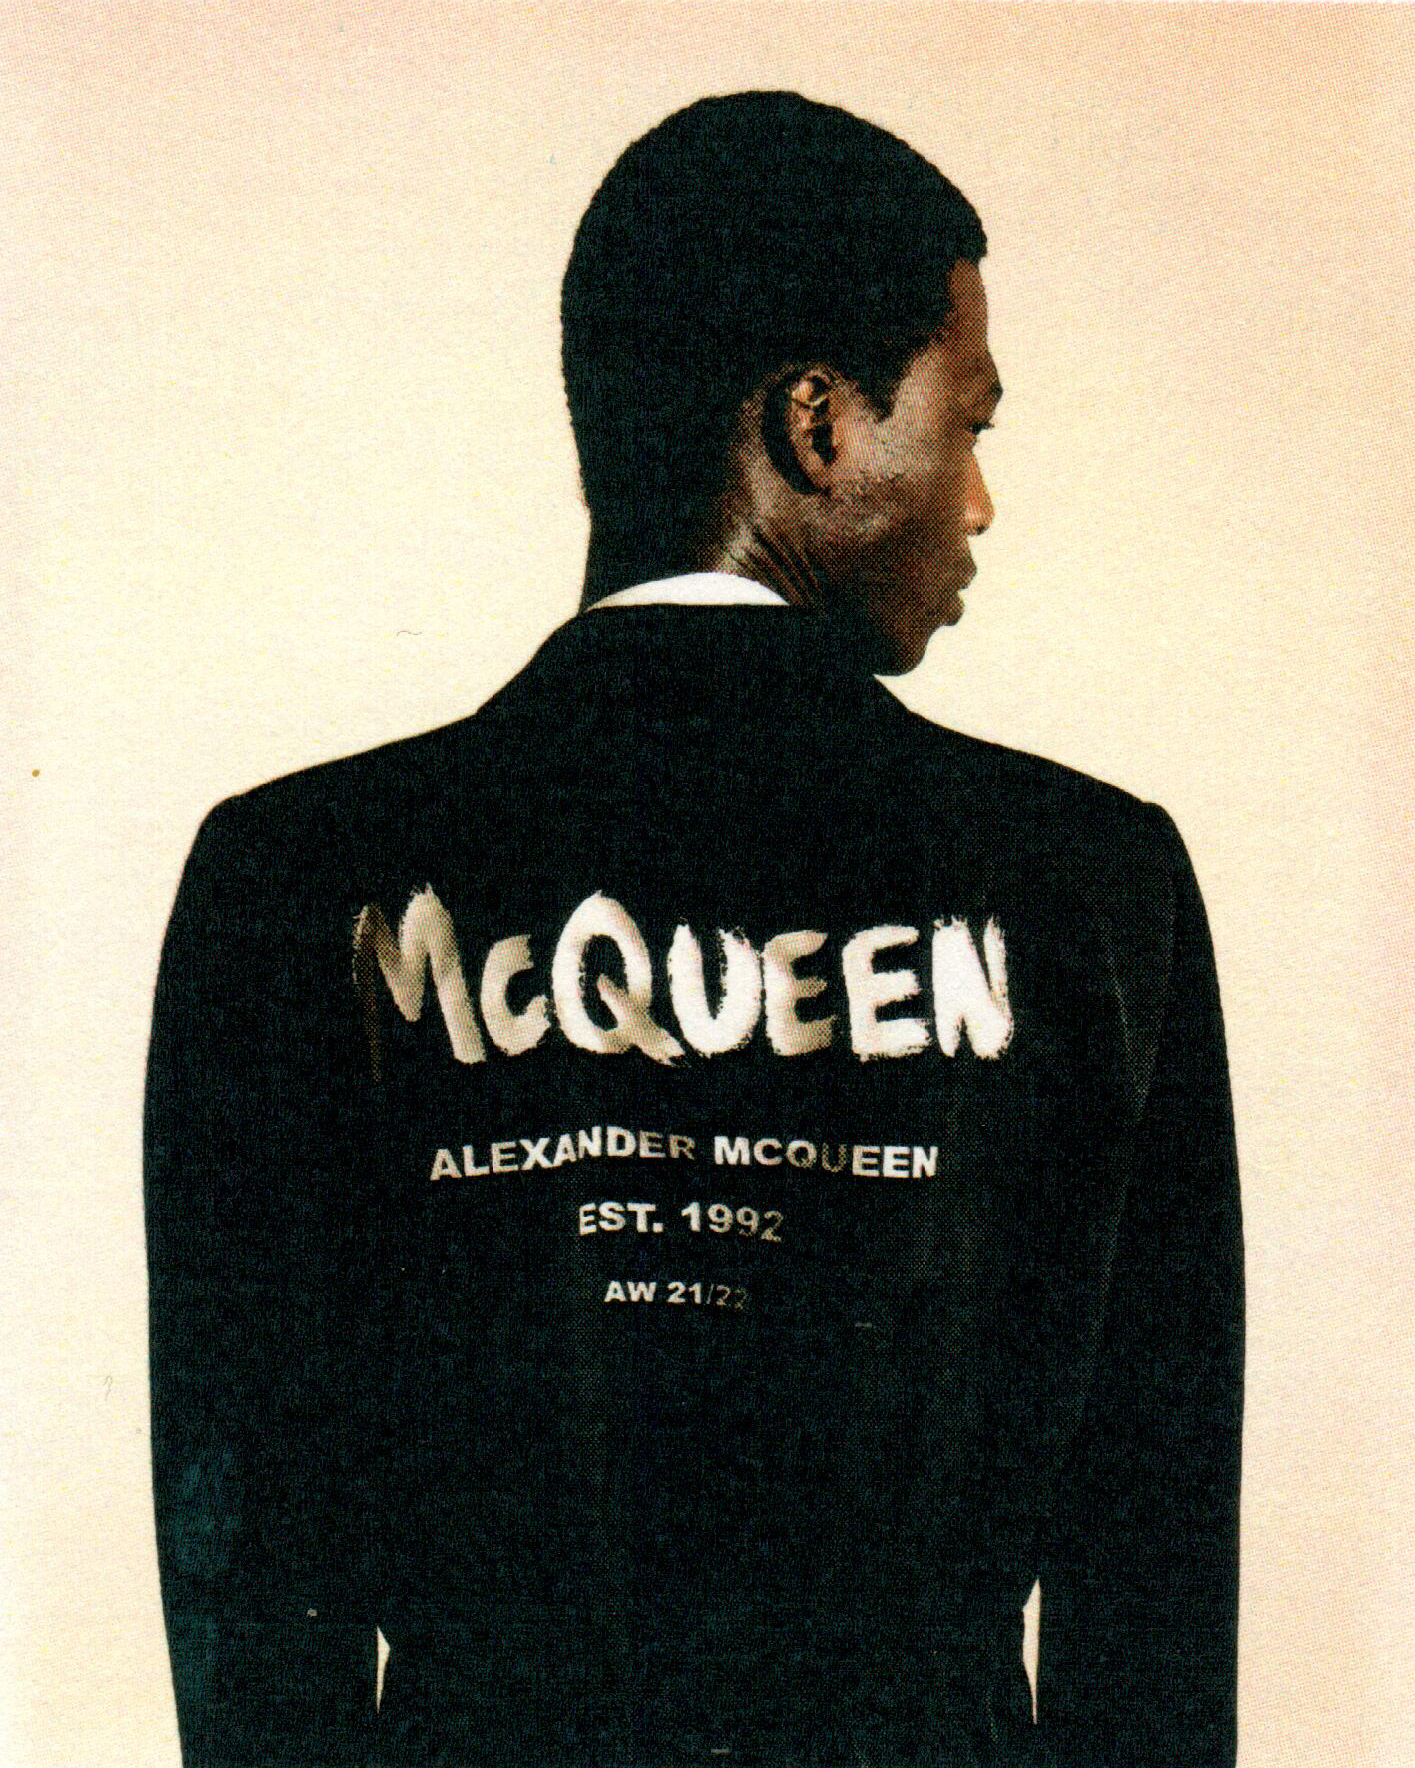 A jacket with McQueen graffiti